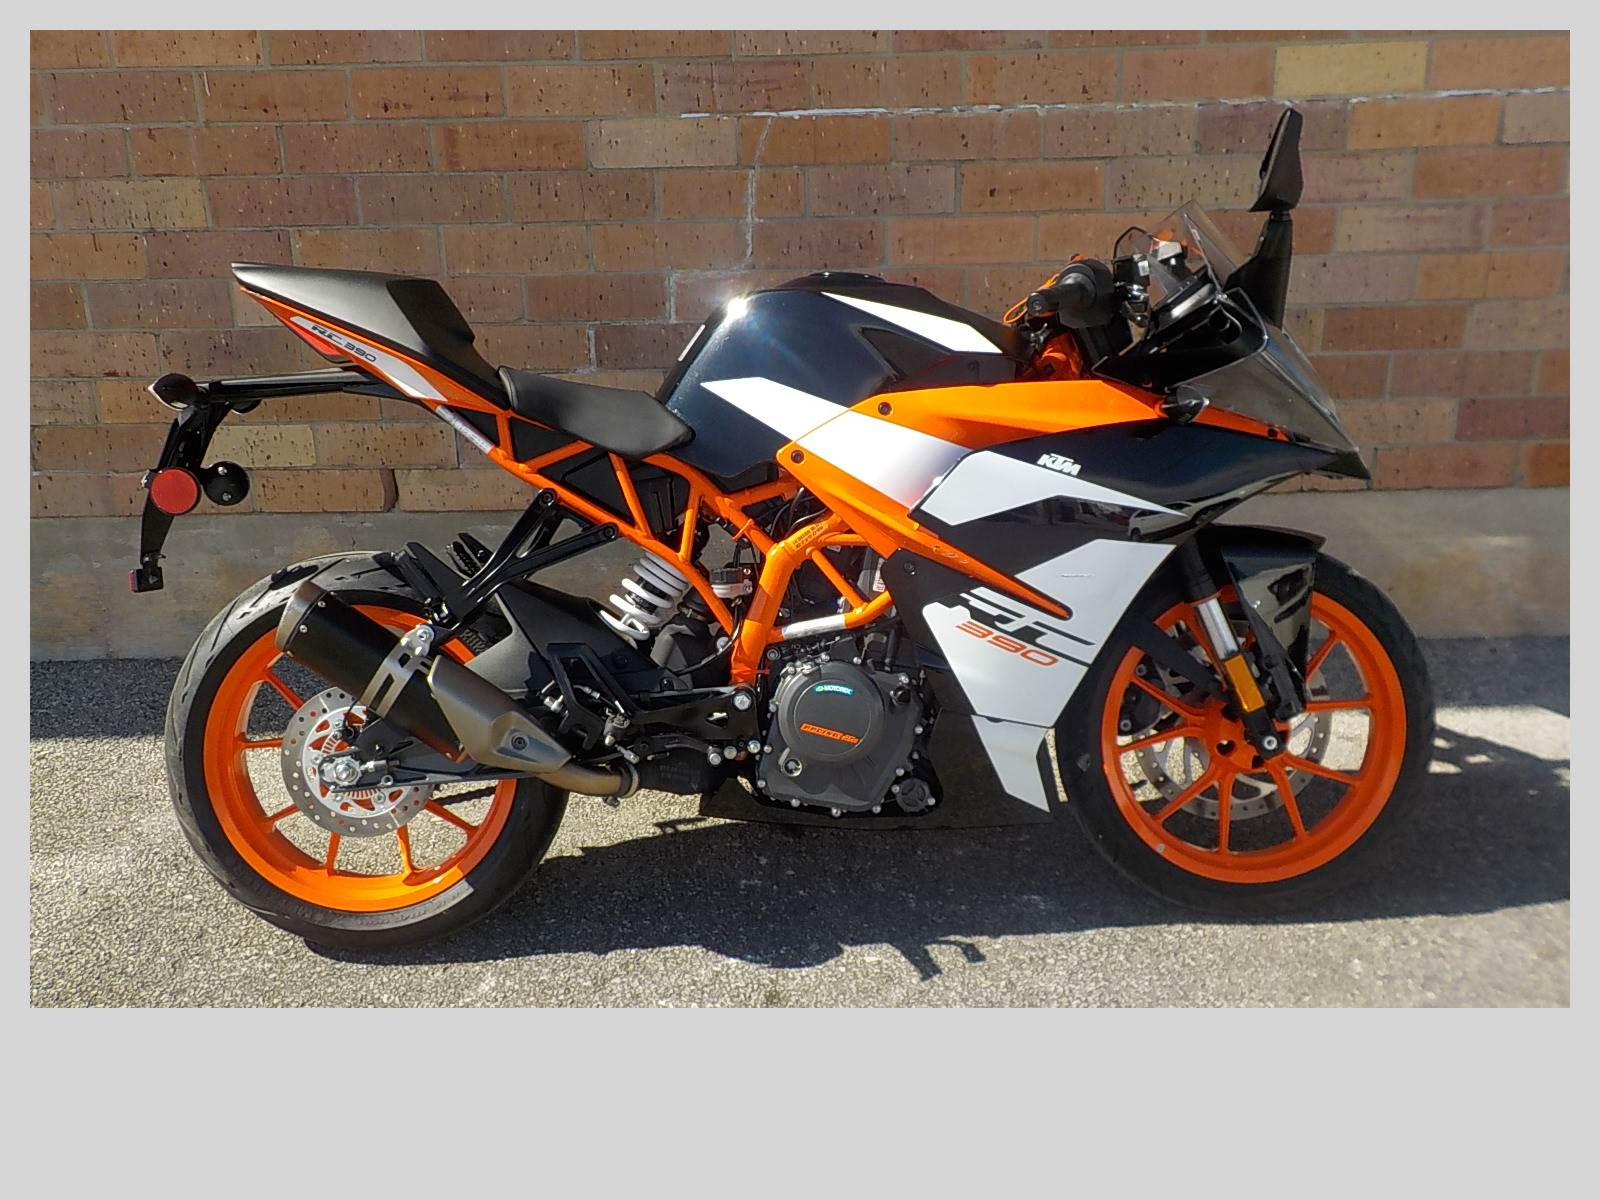 2018 KTM RC 390 in San Antonio, Texas - Photo 1